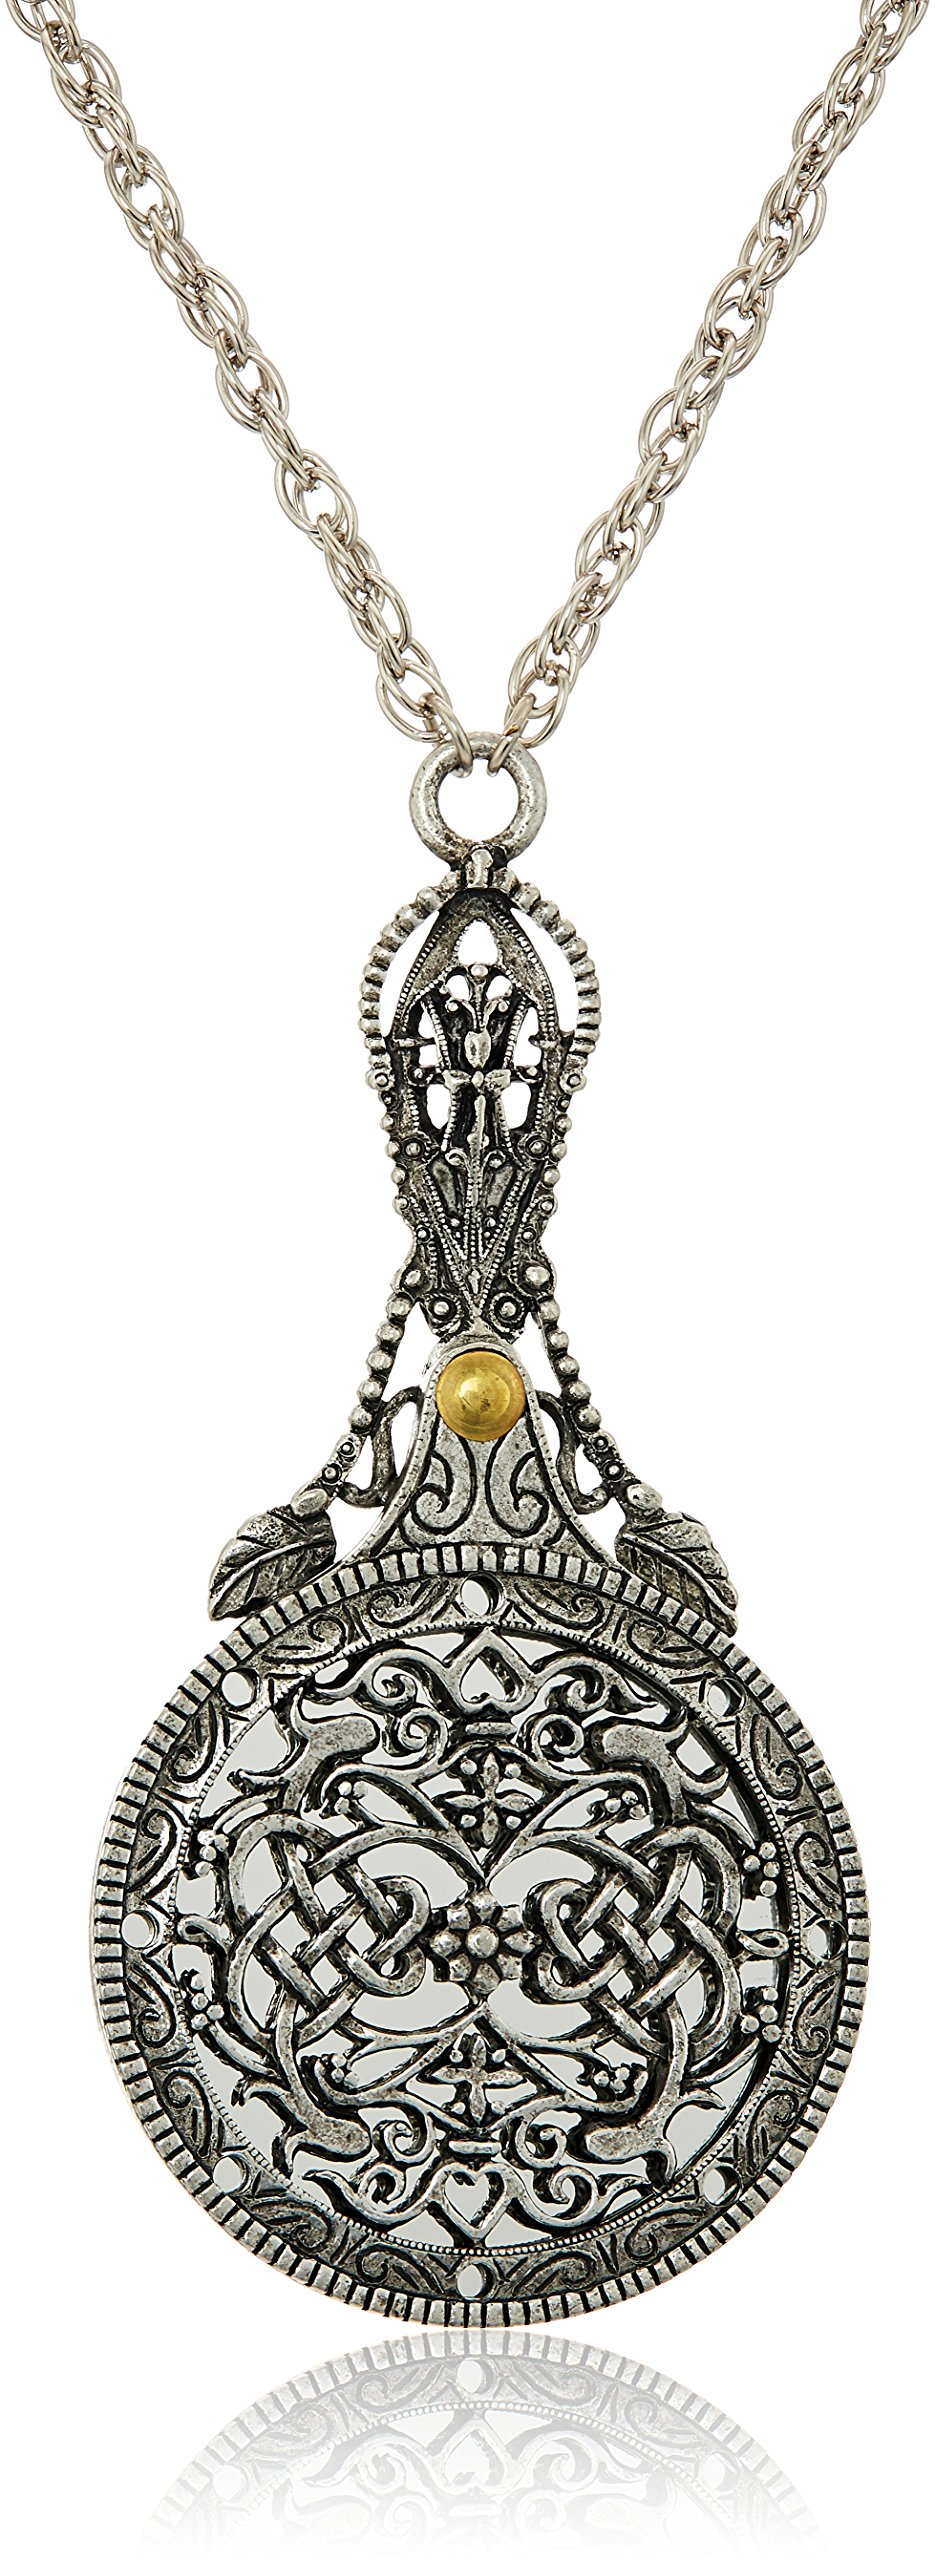 1928 Jewelry Womens Pewter Mirror with Sliding Filigree Cover Necklace Pendant Enhancer, 30 by 1928 Jewelry